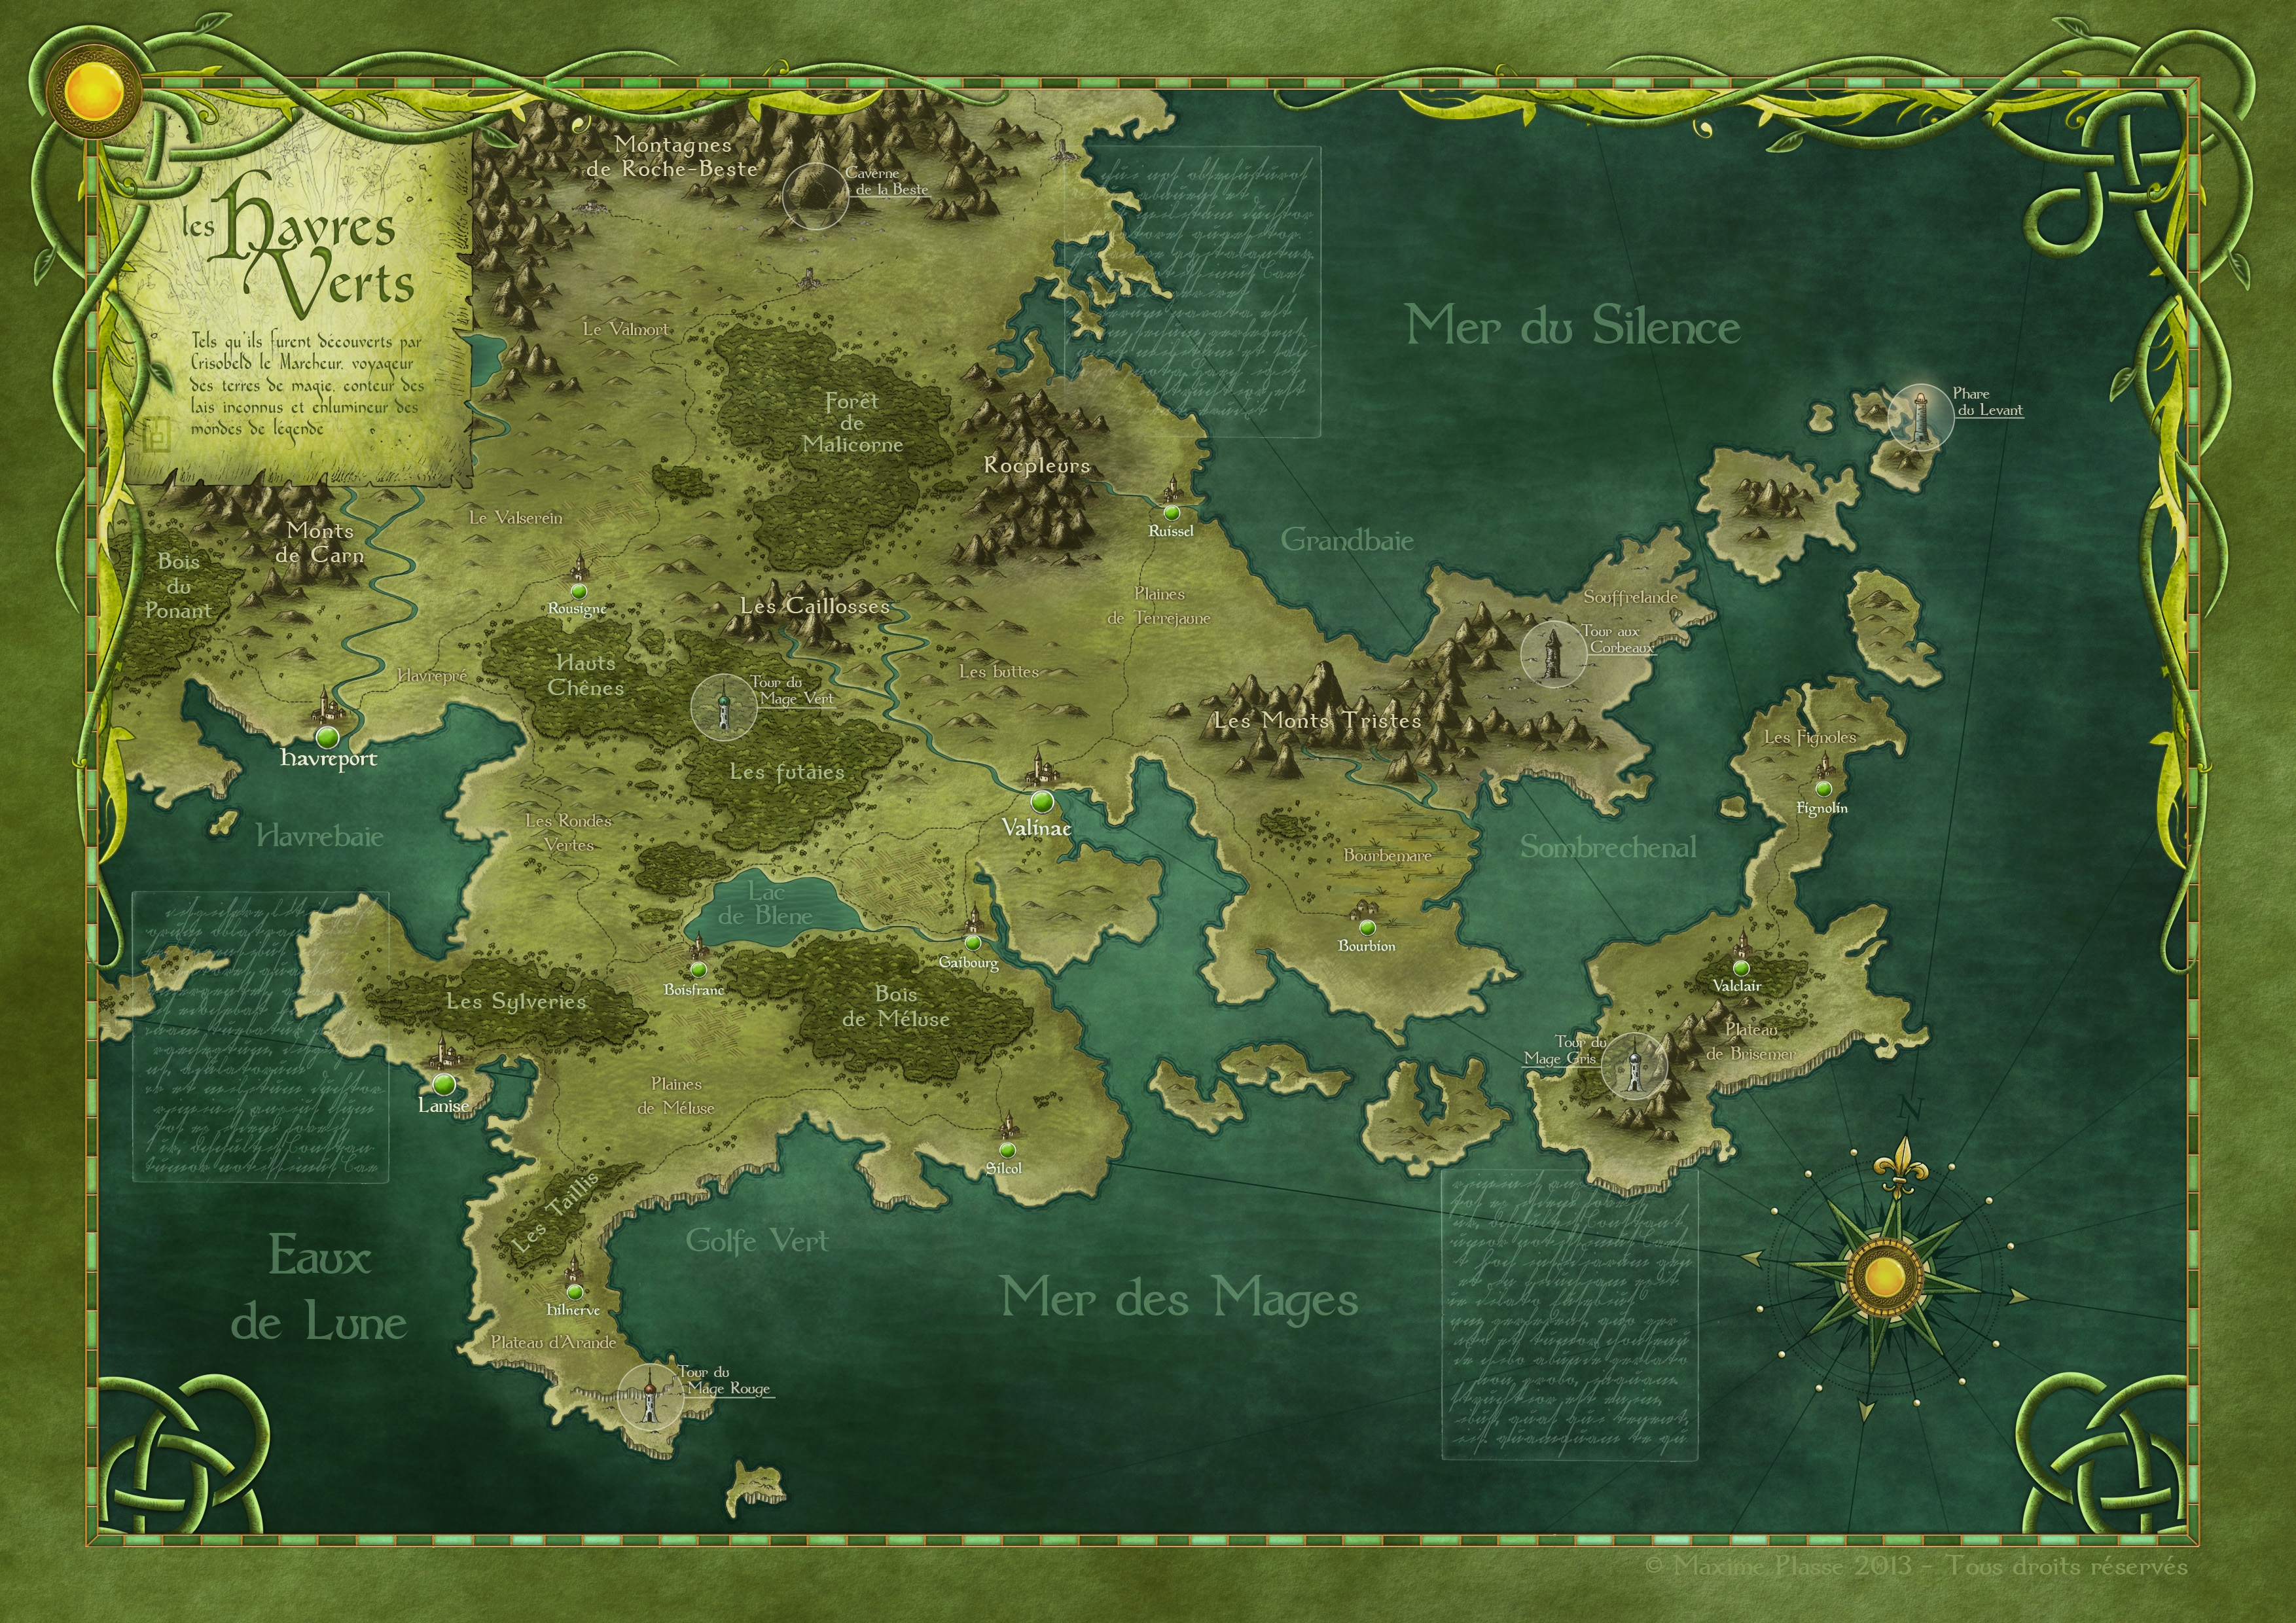 The Green Havens - Tales book project Commission.